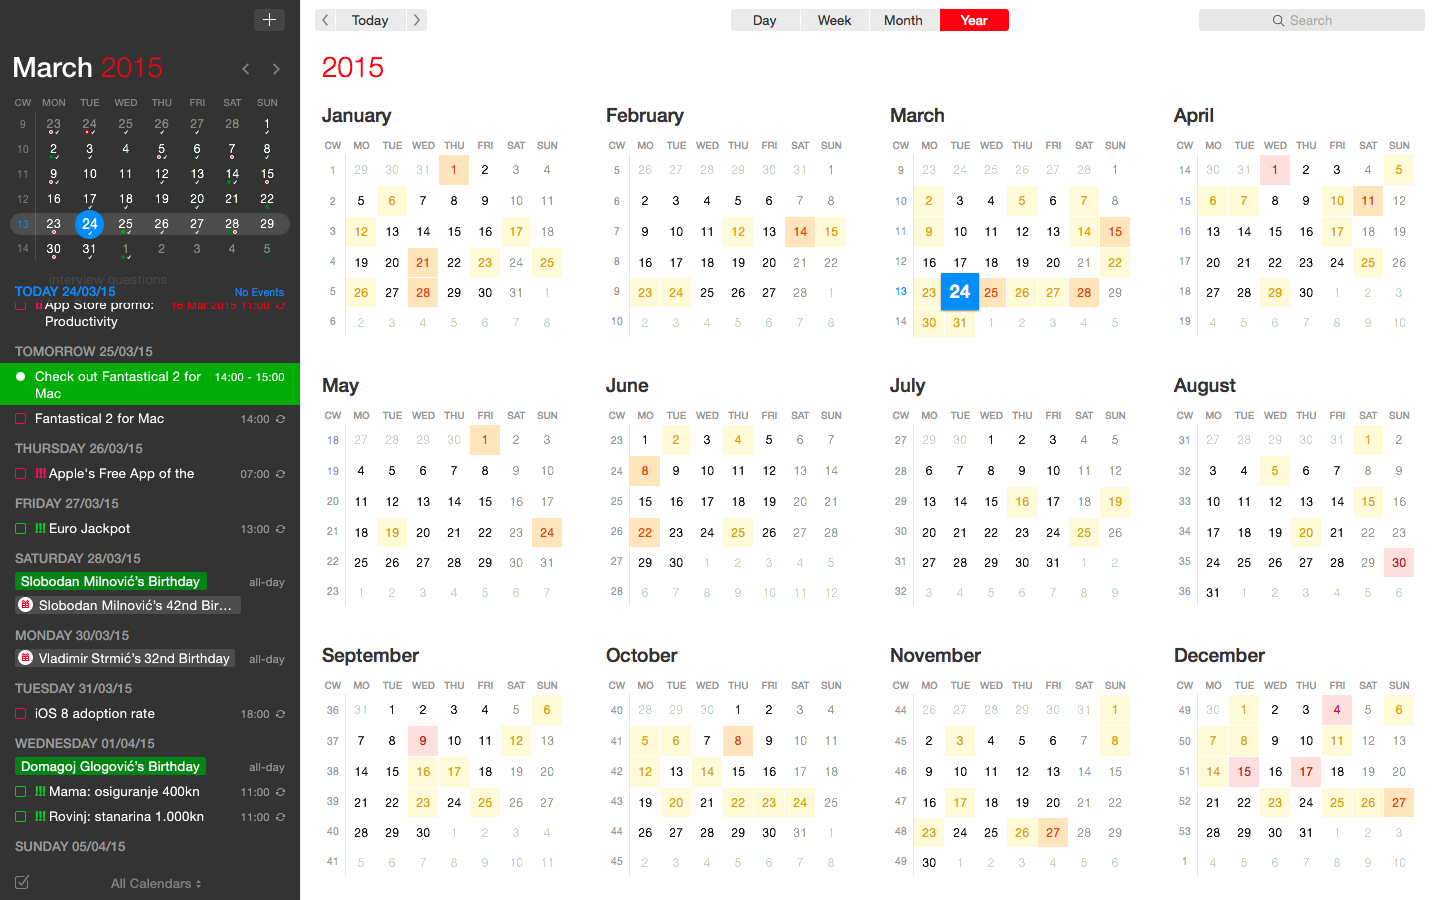 Fantastical 2 for Mac full screen